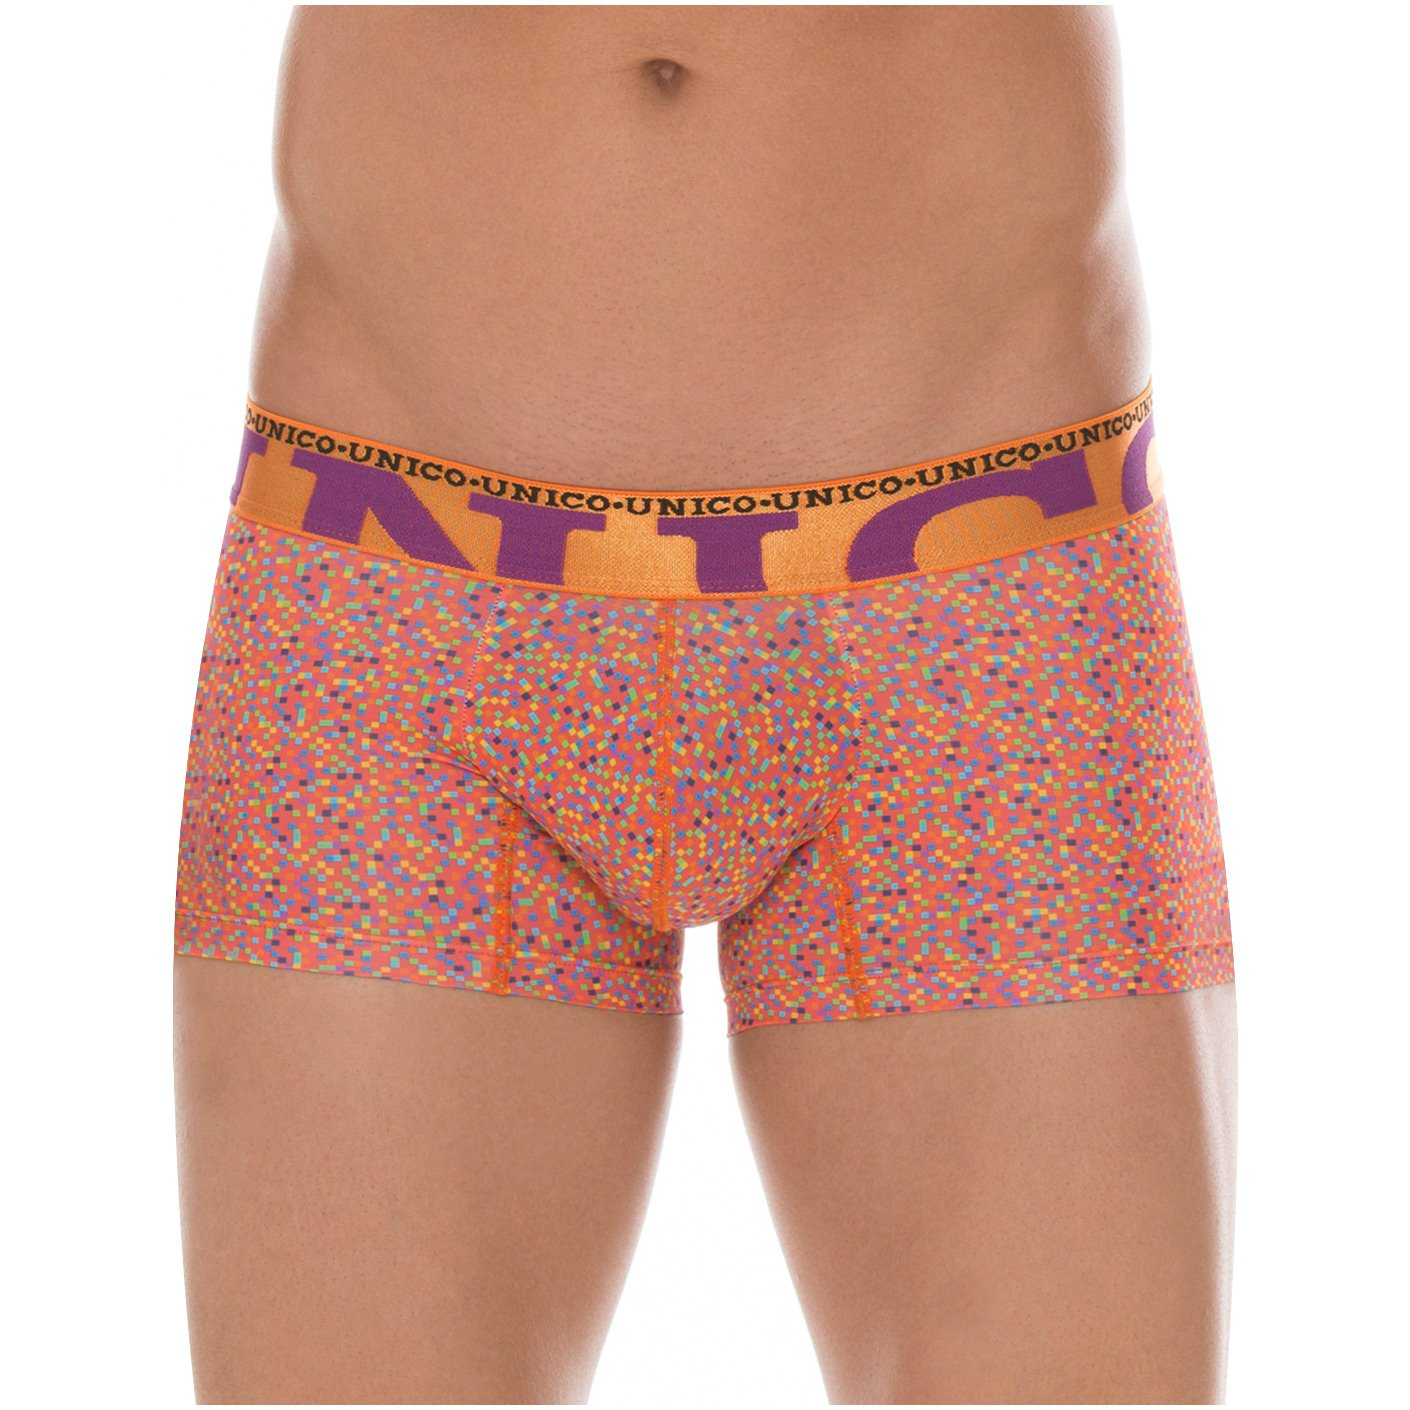 Mundo Unico Men Colombian Print Microfiber Short Boxers Briefs Calzoncillos M at Amazon Mens Clothing store: